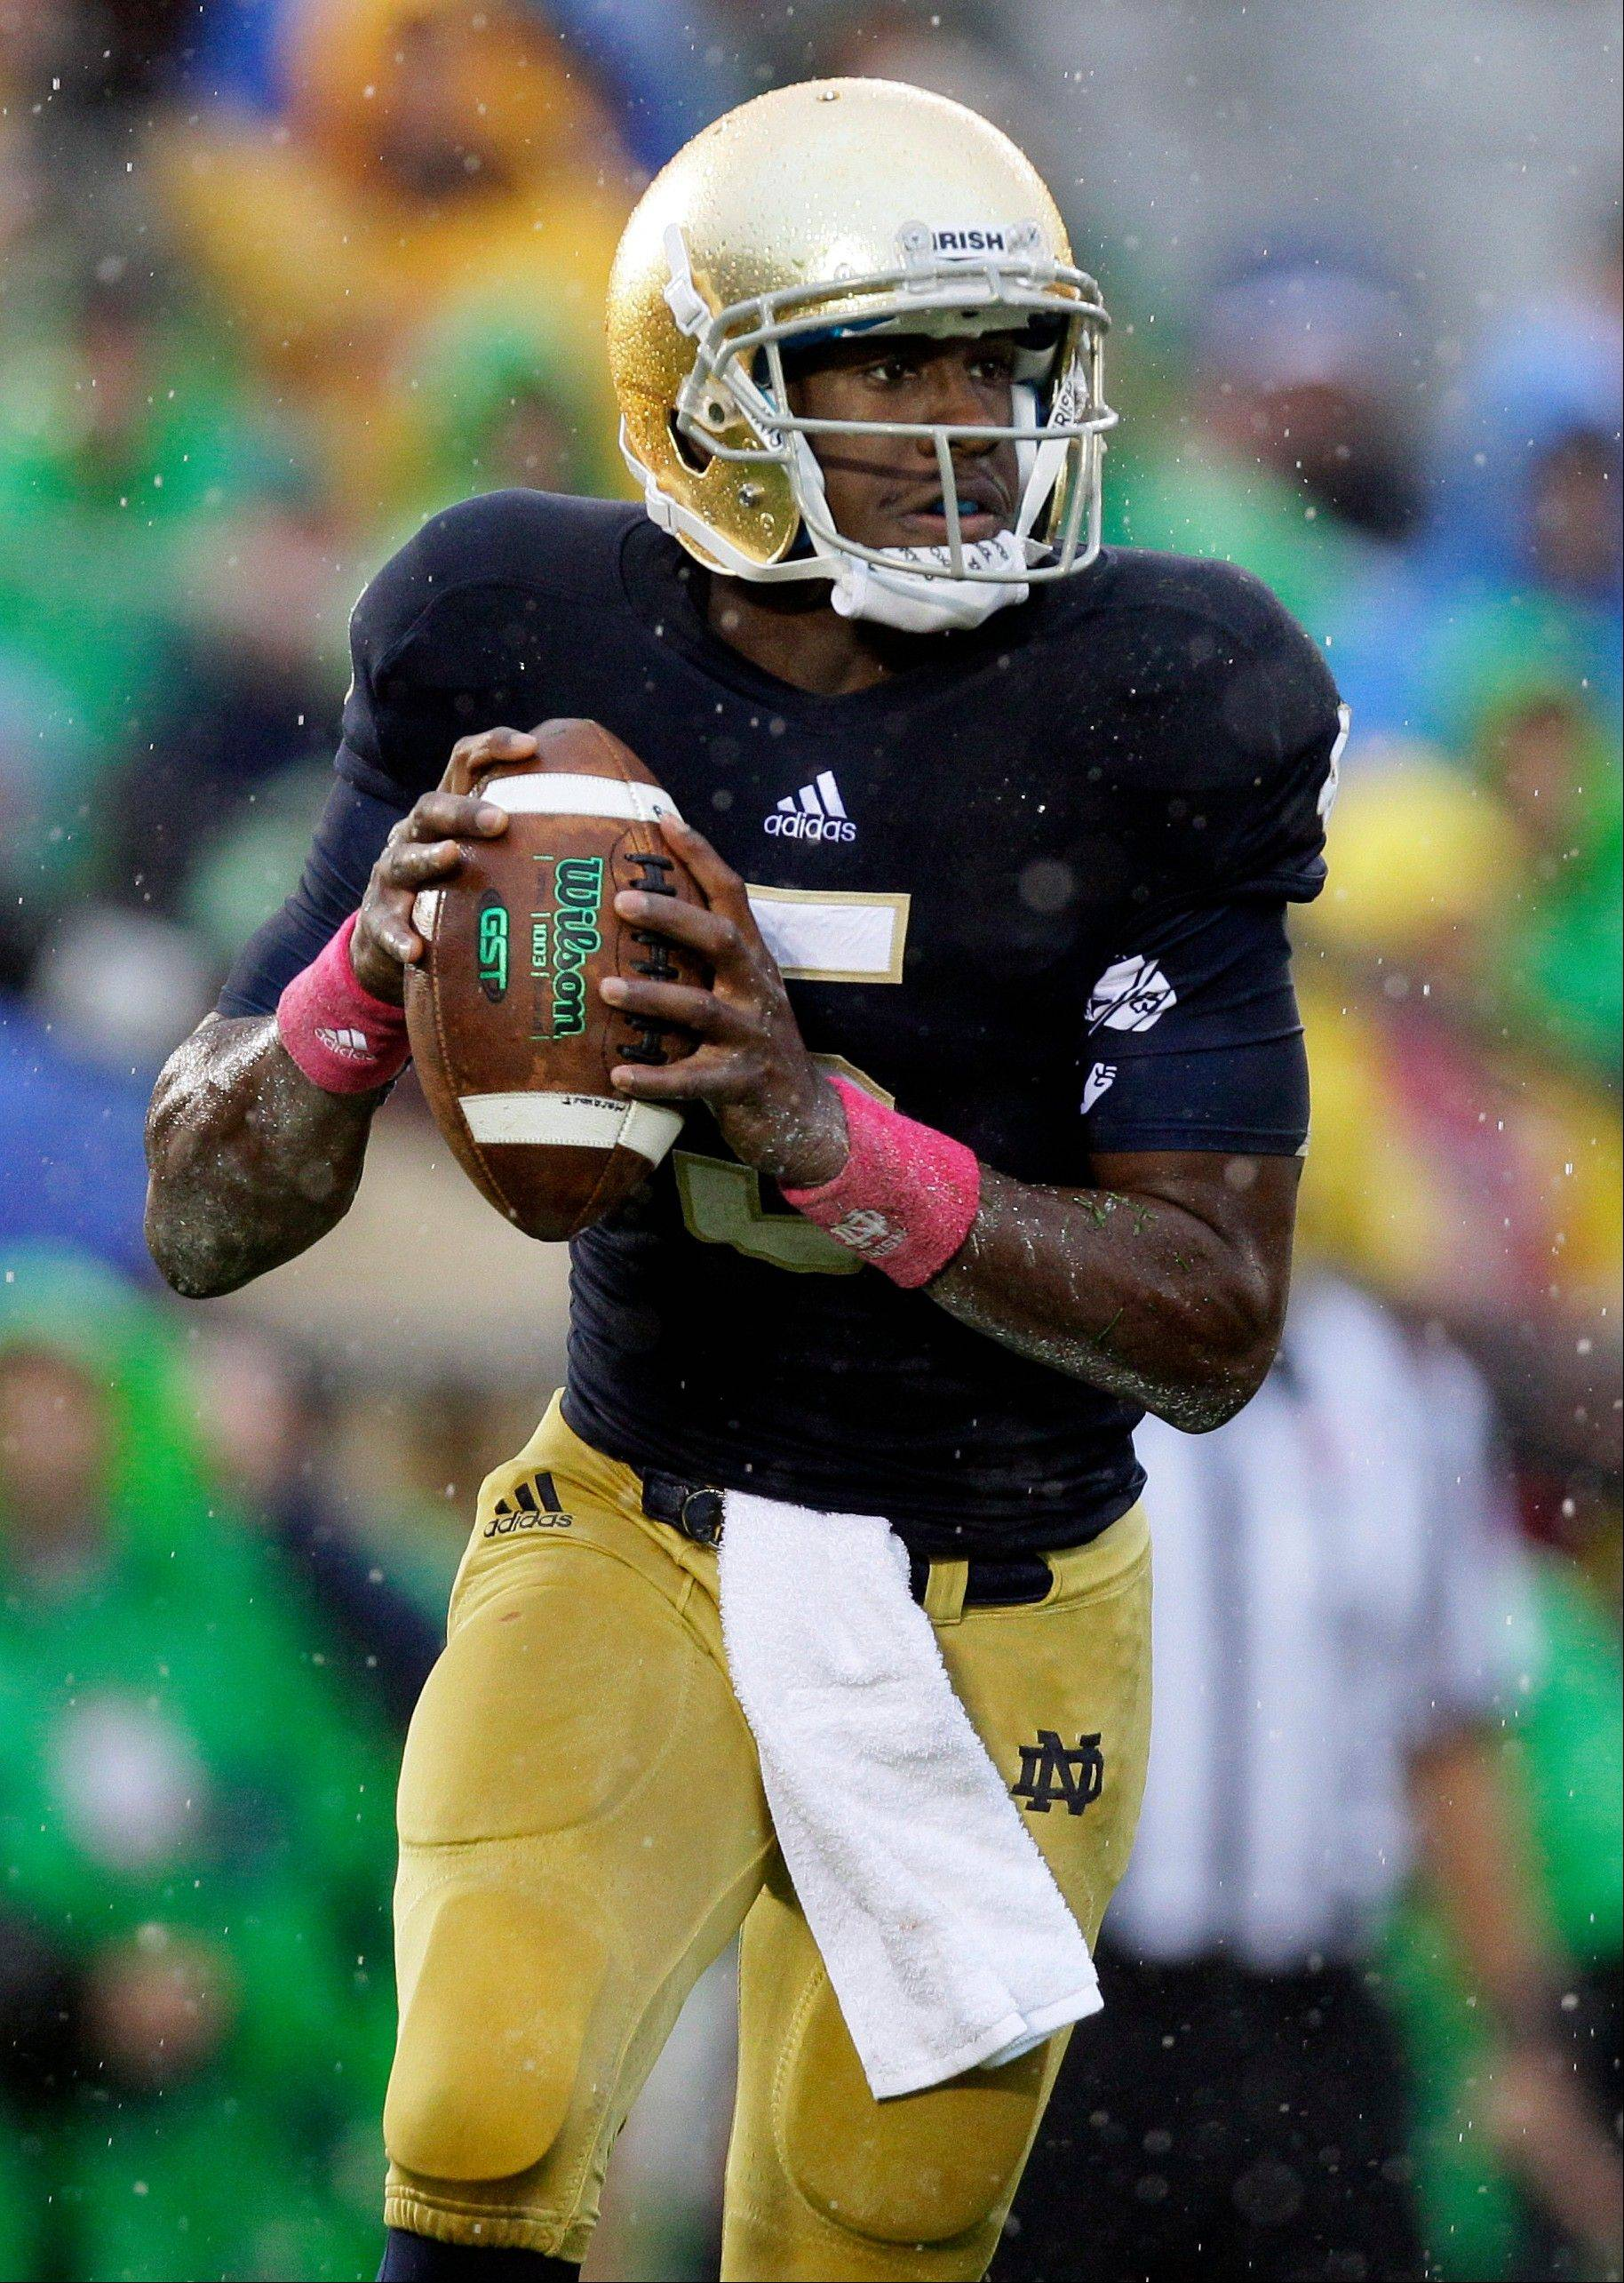 Notre Dame quarterback Everett Golson rolls out to pass during the first half last Saturday's game against Stanford in South Bend, Ind. Golson sustained a concussion on a helmet-to-helmet hit but has been cleared to play this week. Whether he will is still uncertain.